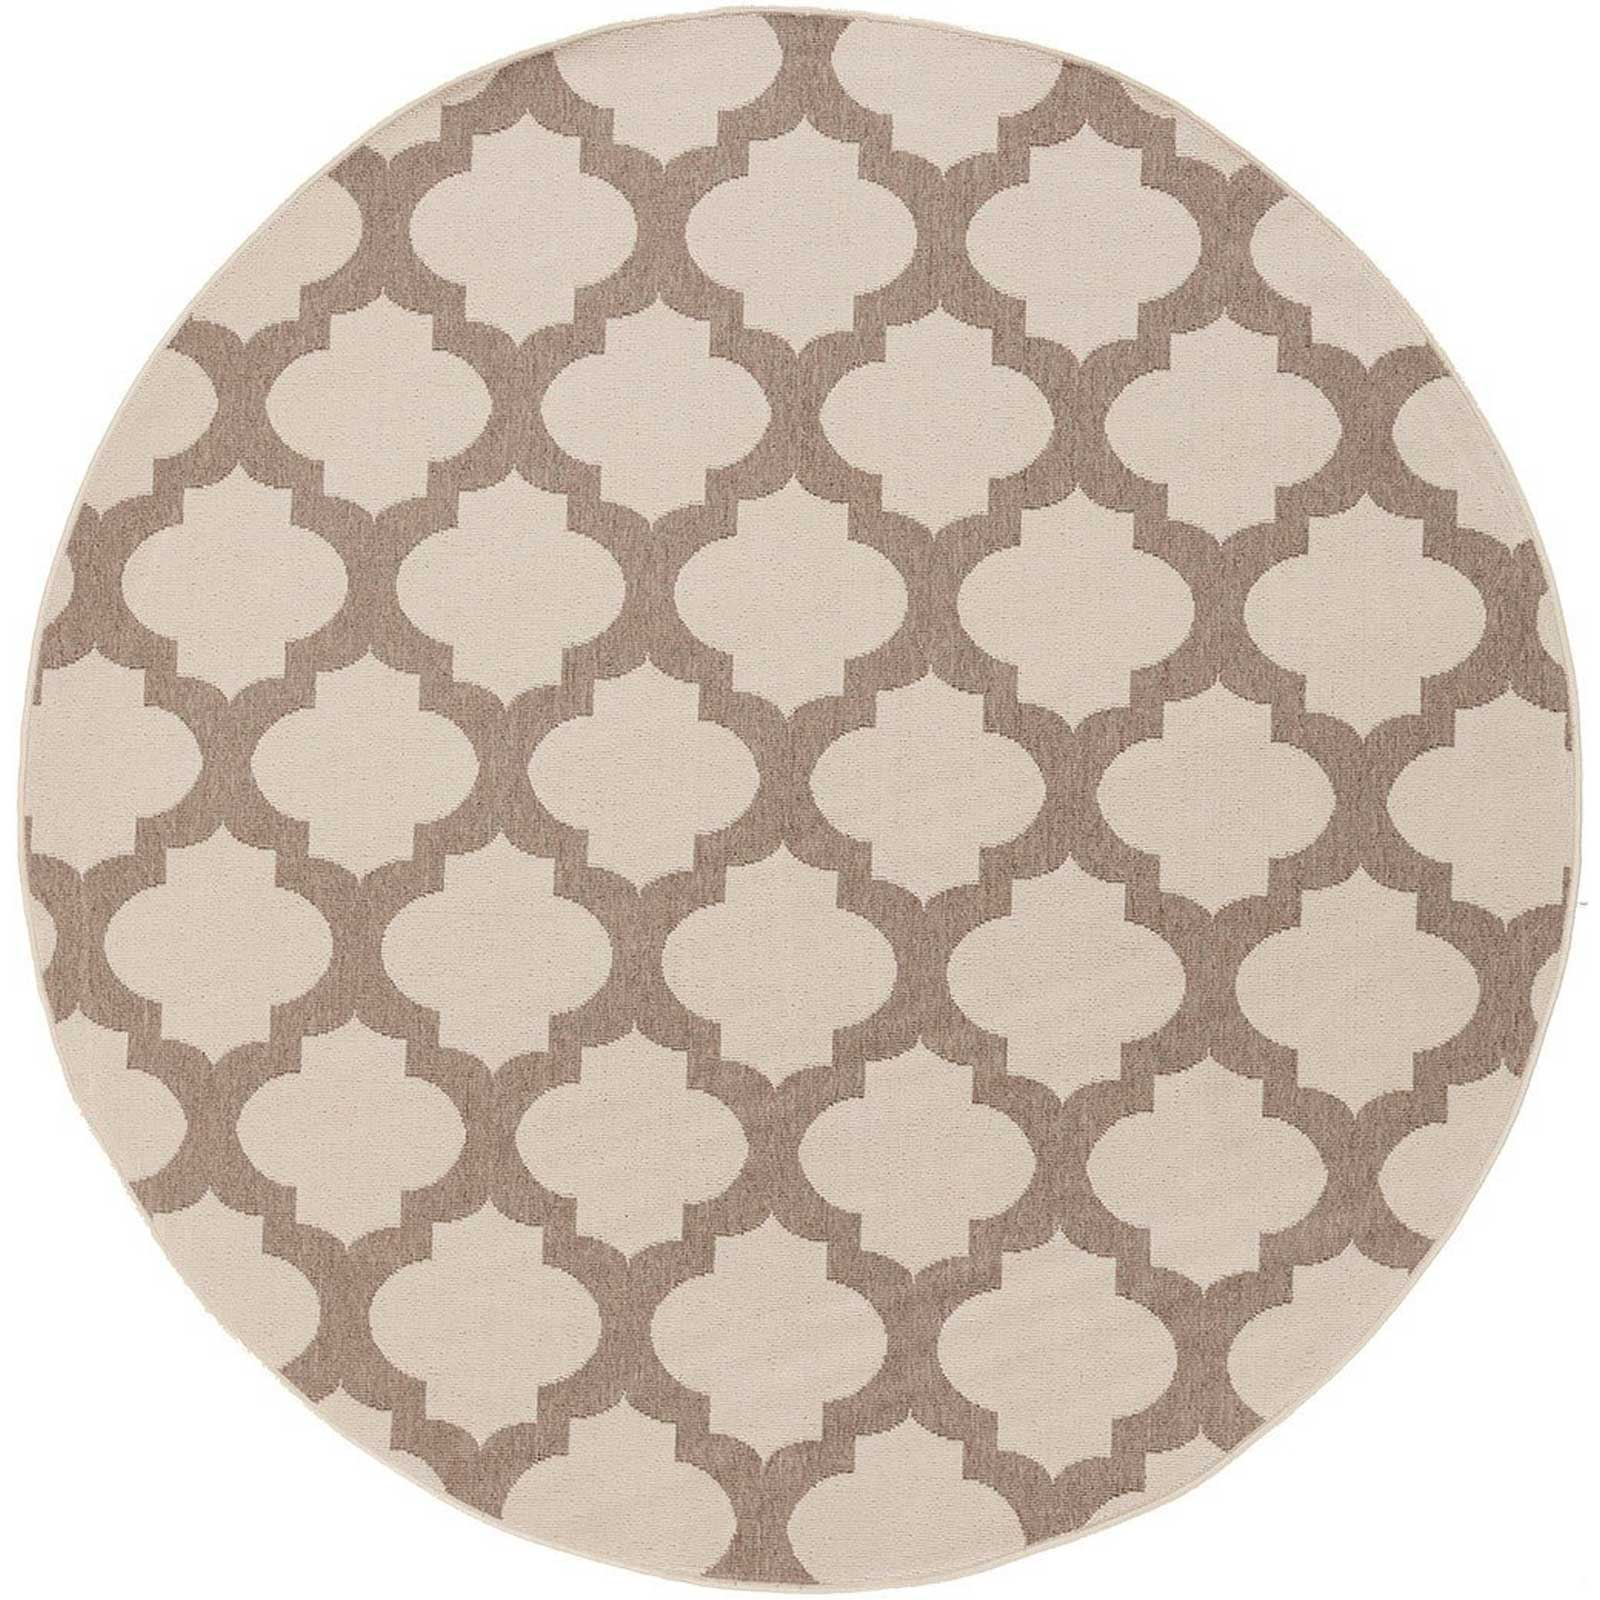 Alfresco Lattice Beige/Taupe Round Rug